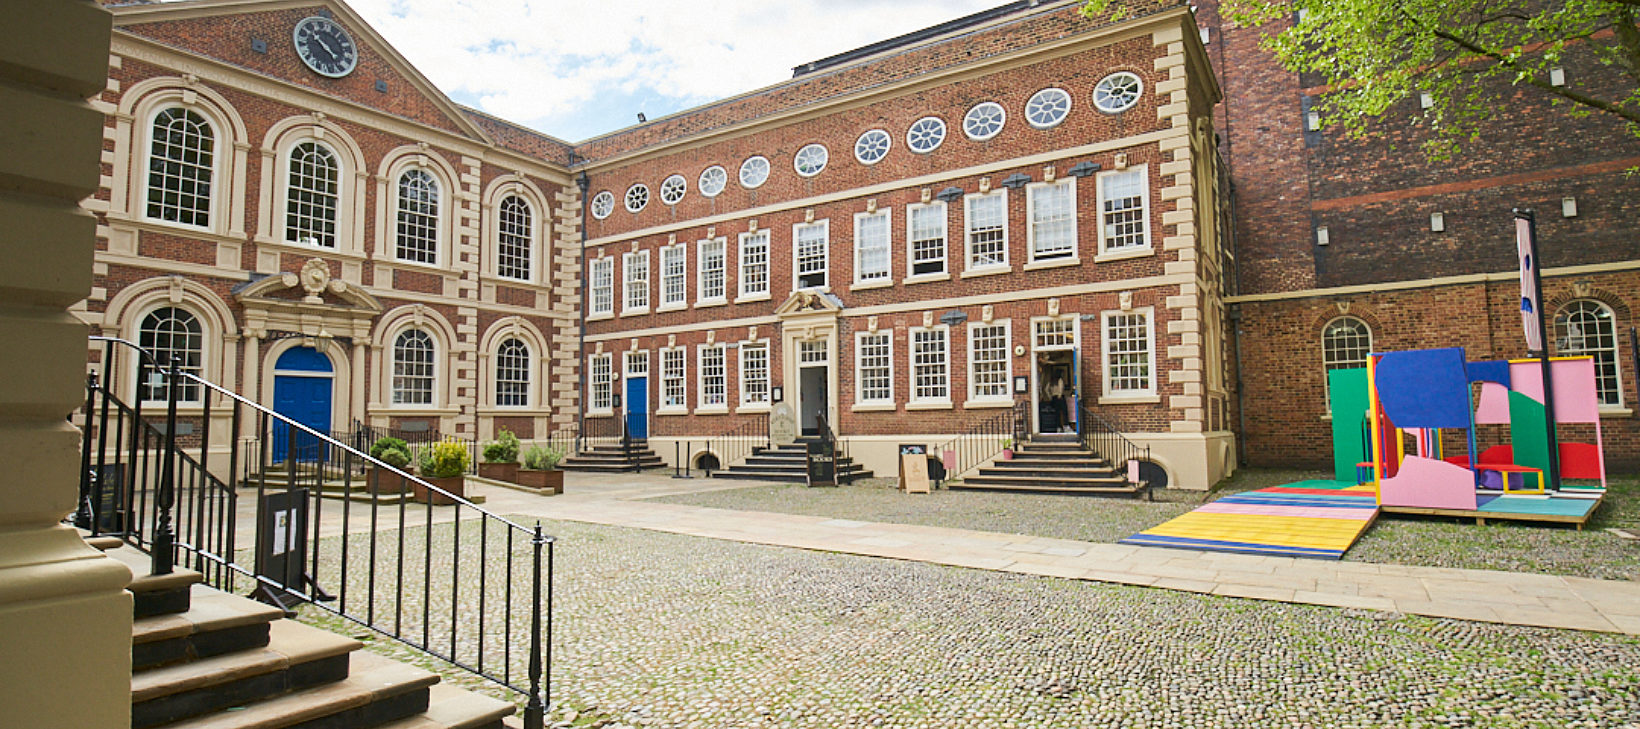 Image shows the Bluecoat building from the courtyard, with Bluecoat Platform, a colourful sculpture, in the right hand corner.